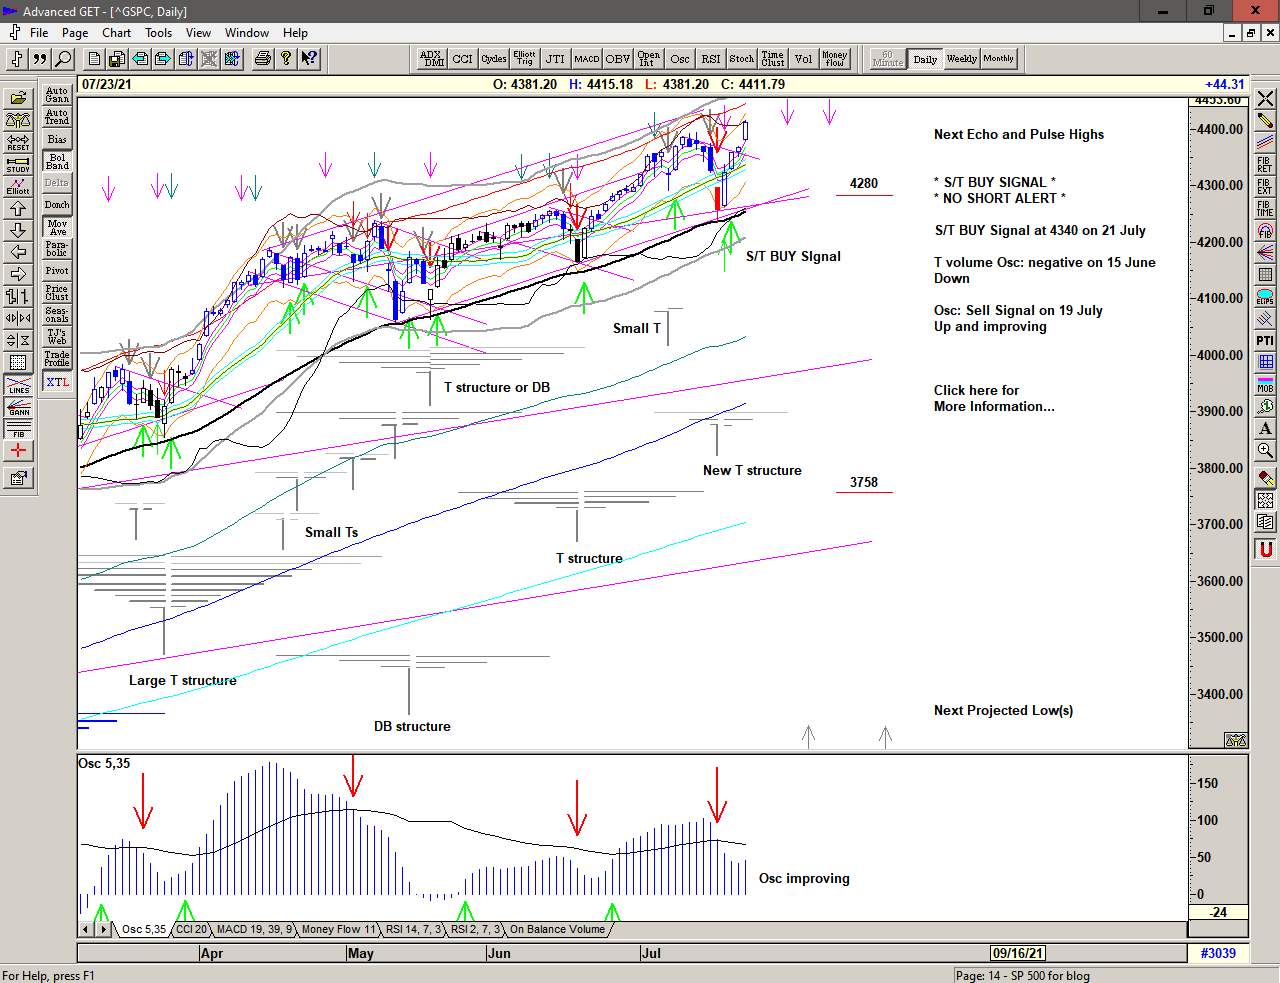 Daily chart of S&P 500 for 26 July 2021